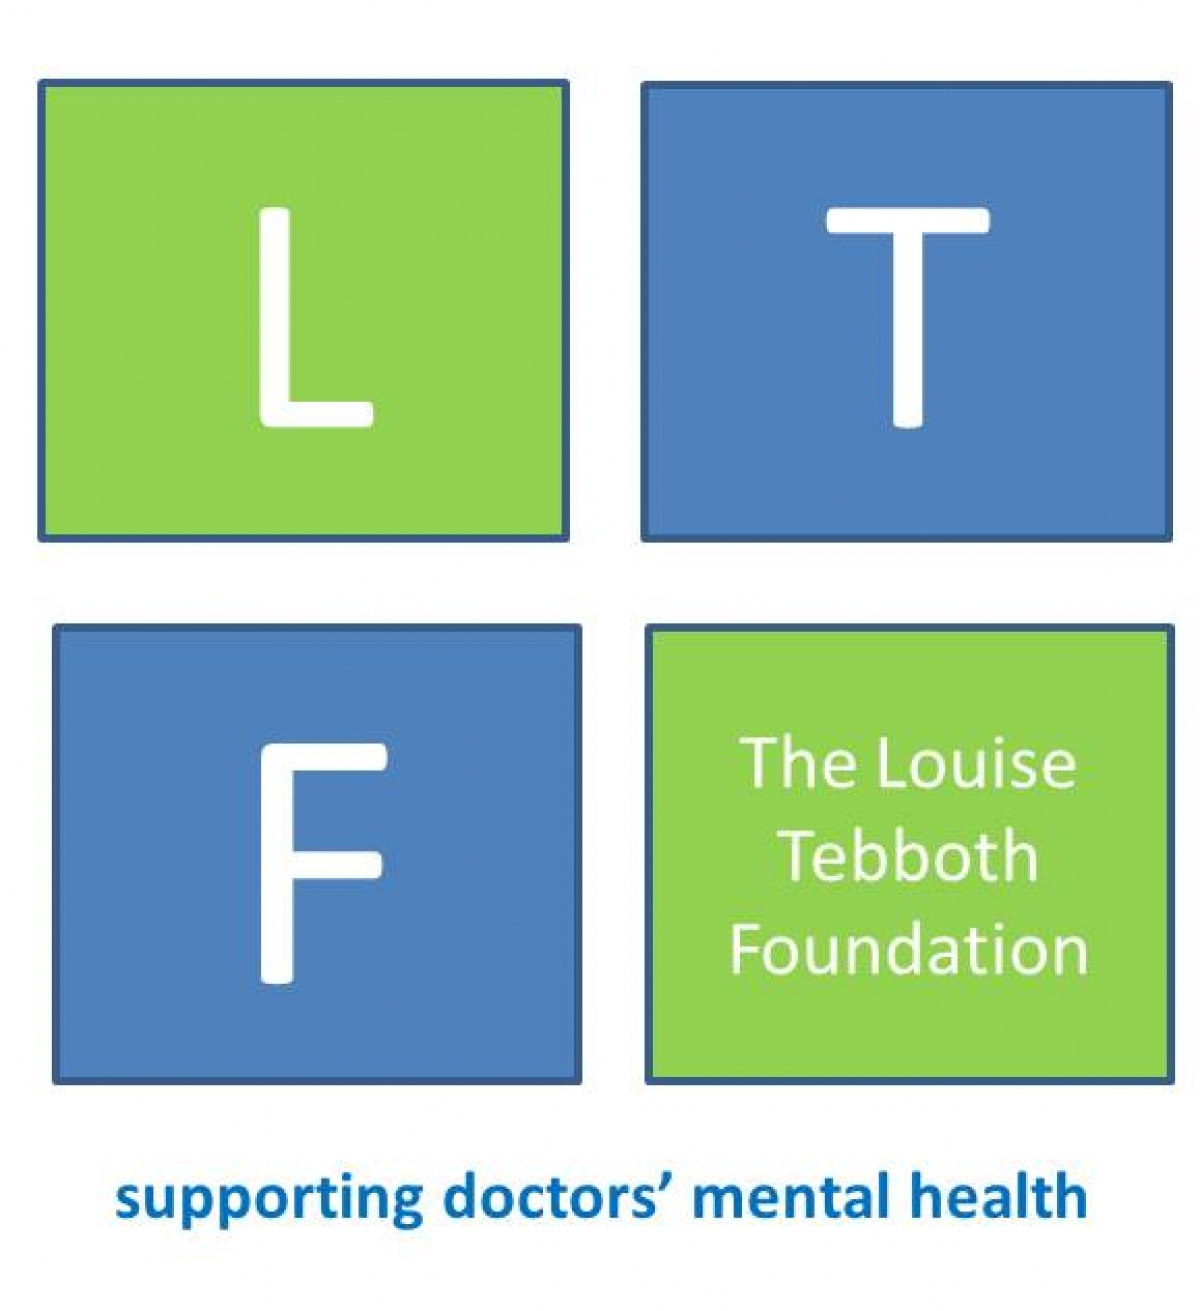 The Louise Tebboth Foundation eCards